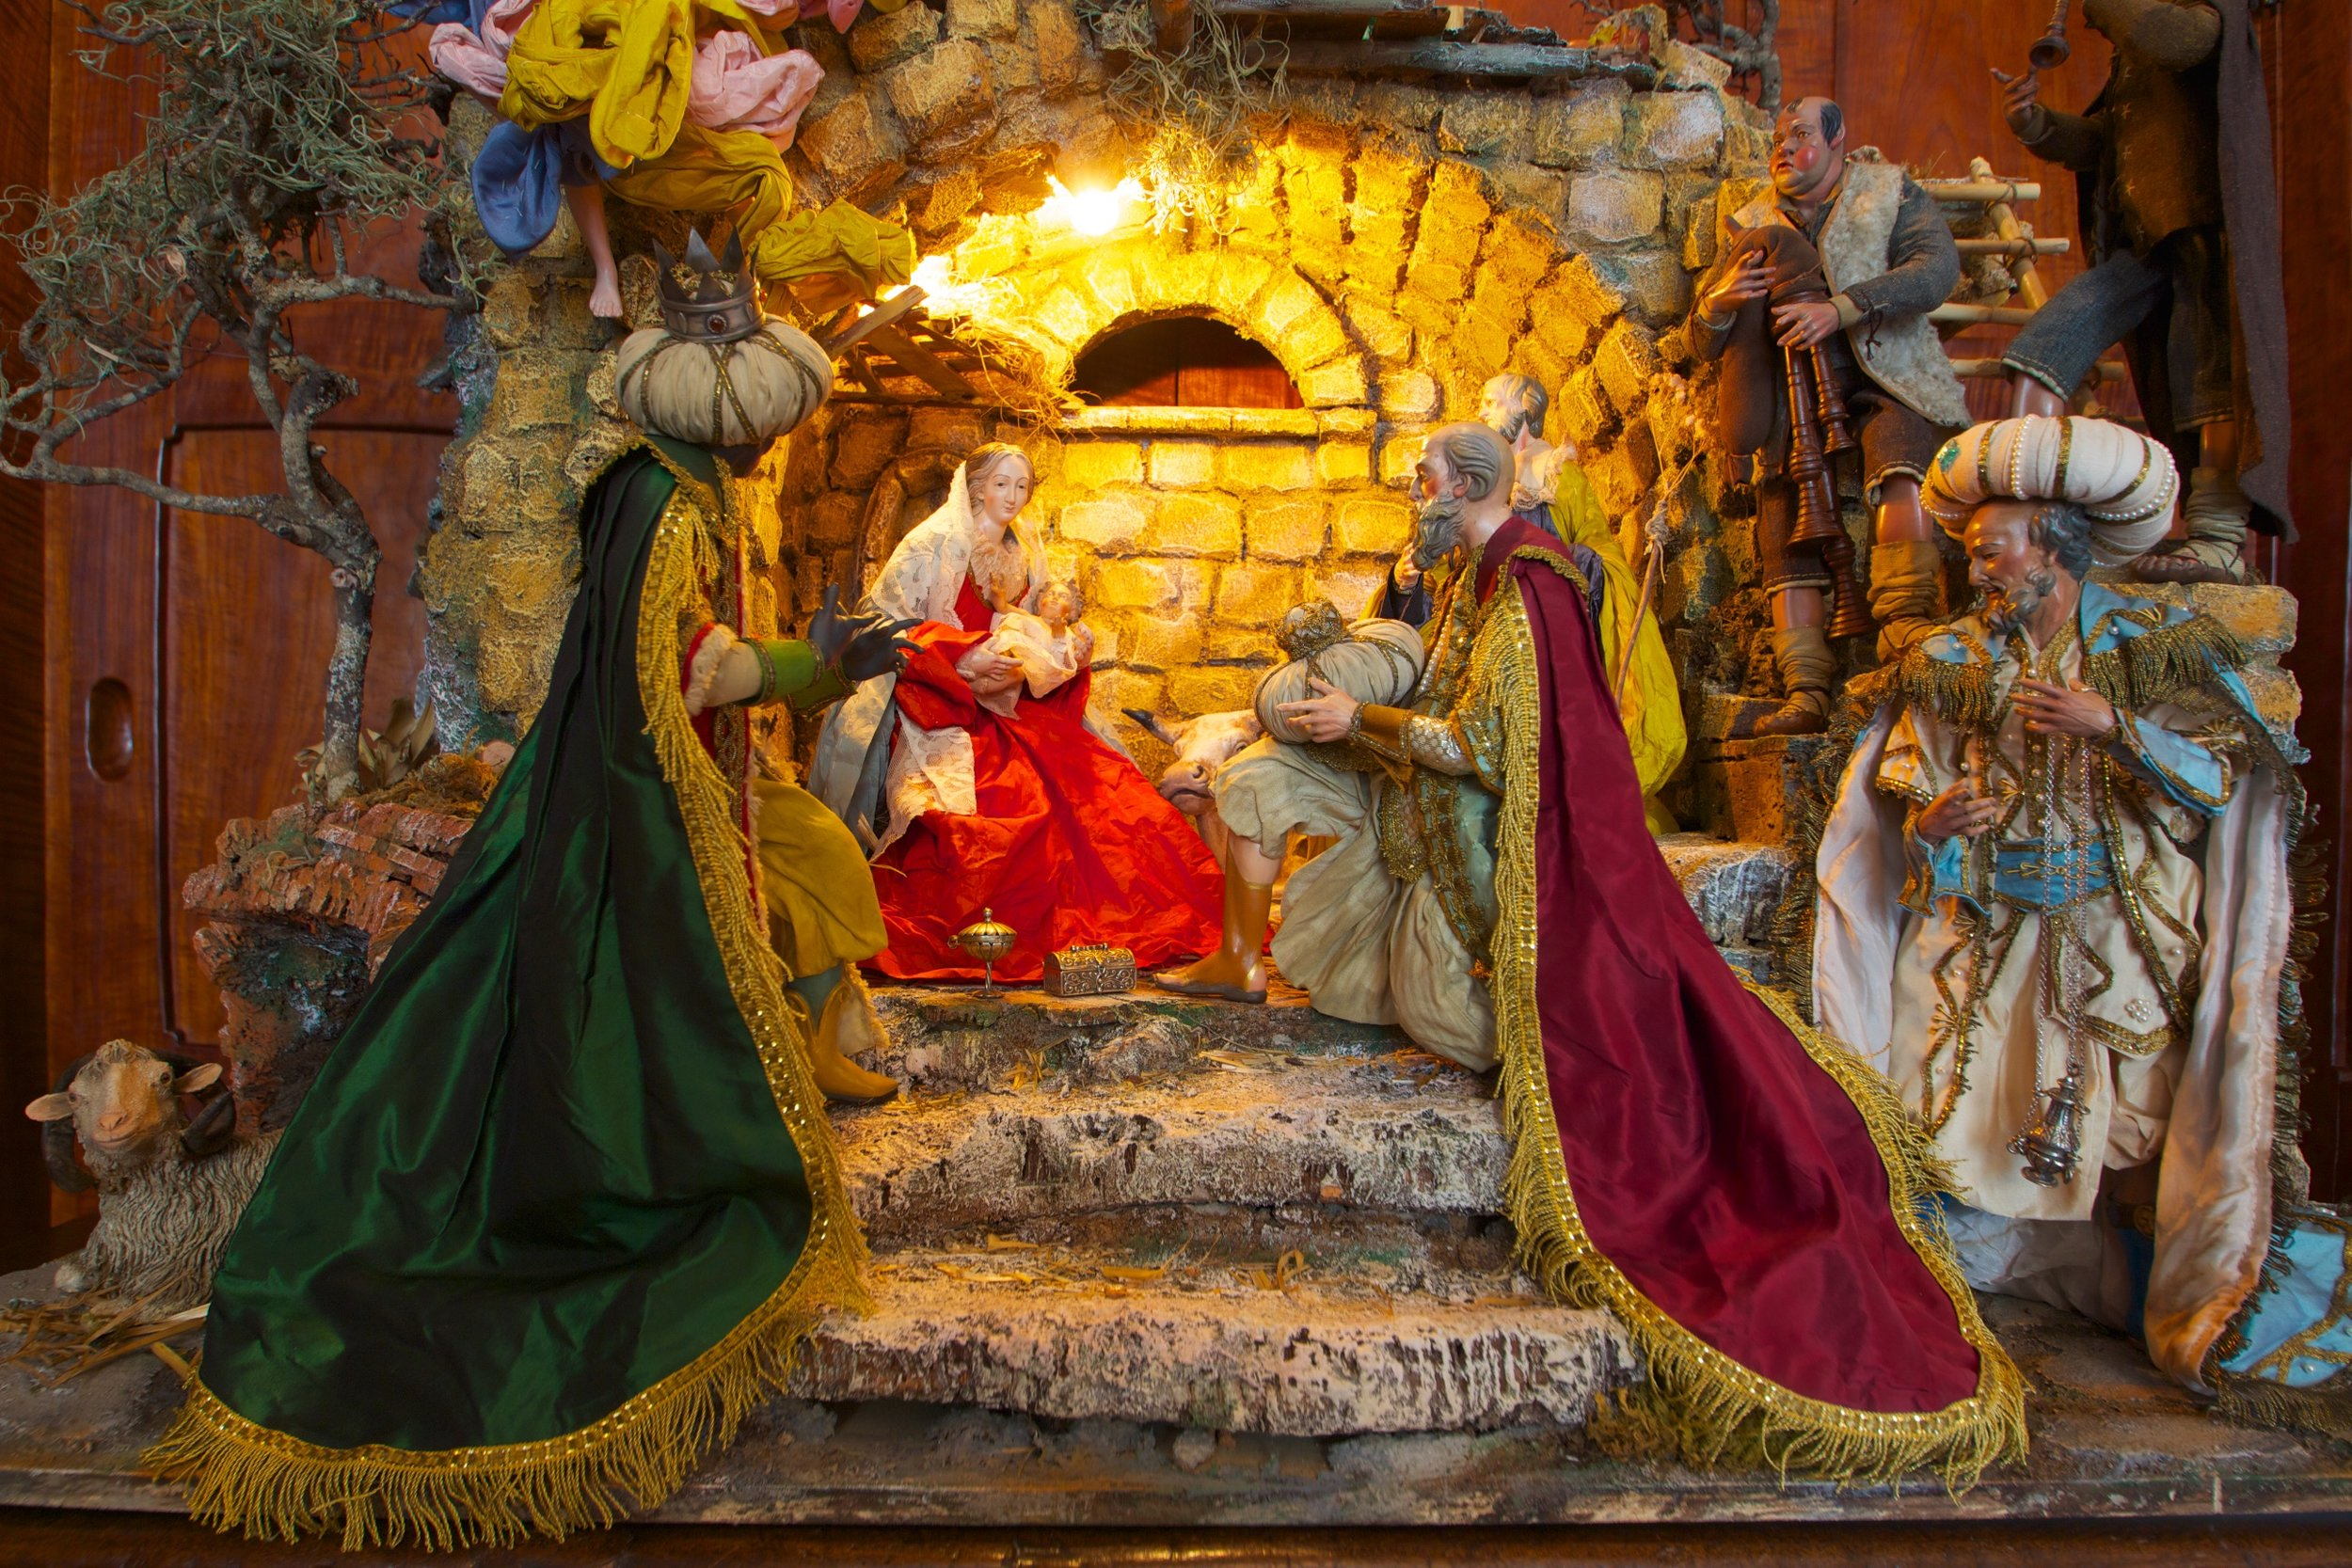 Figure 2: This Neapolitan Presepio (Nativity) is the work of the Giuseppe and Marco Ferrigno company, a fourth-generation family business located in Naples, Italy. The art has been passed from father to son since 1836, and today the Ferrignos use traditional methods and materials to make Presepio figures and scenes in the 18th-century Neapolitan style. Most of the elements in this Presepio are traditional, including the Roman ruin to symbolize the end of the pagan world, the arrival of the three Magi with gold, frankincense and myrrh, and shepherd musicians ( zampognari ). Collection of Glencairn Museum.